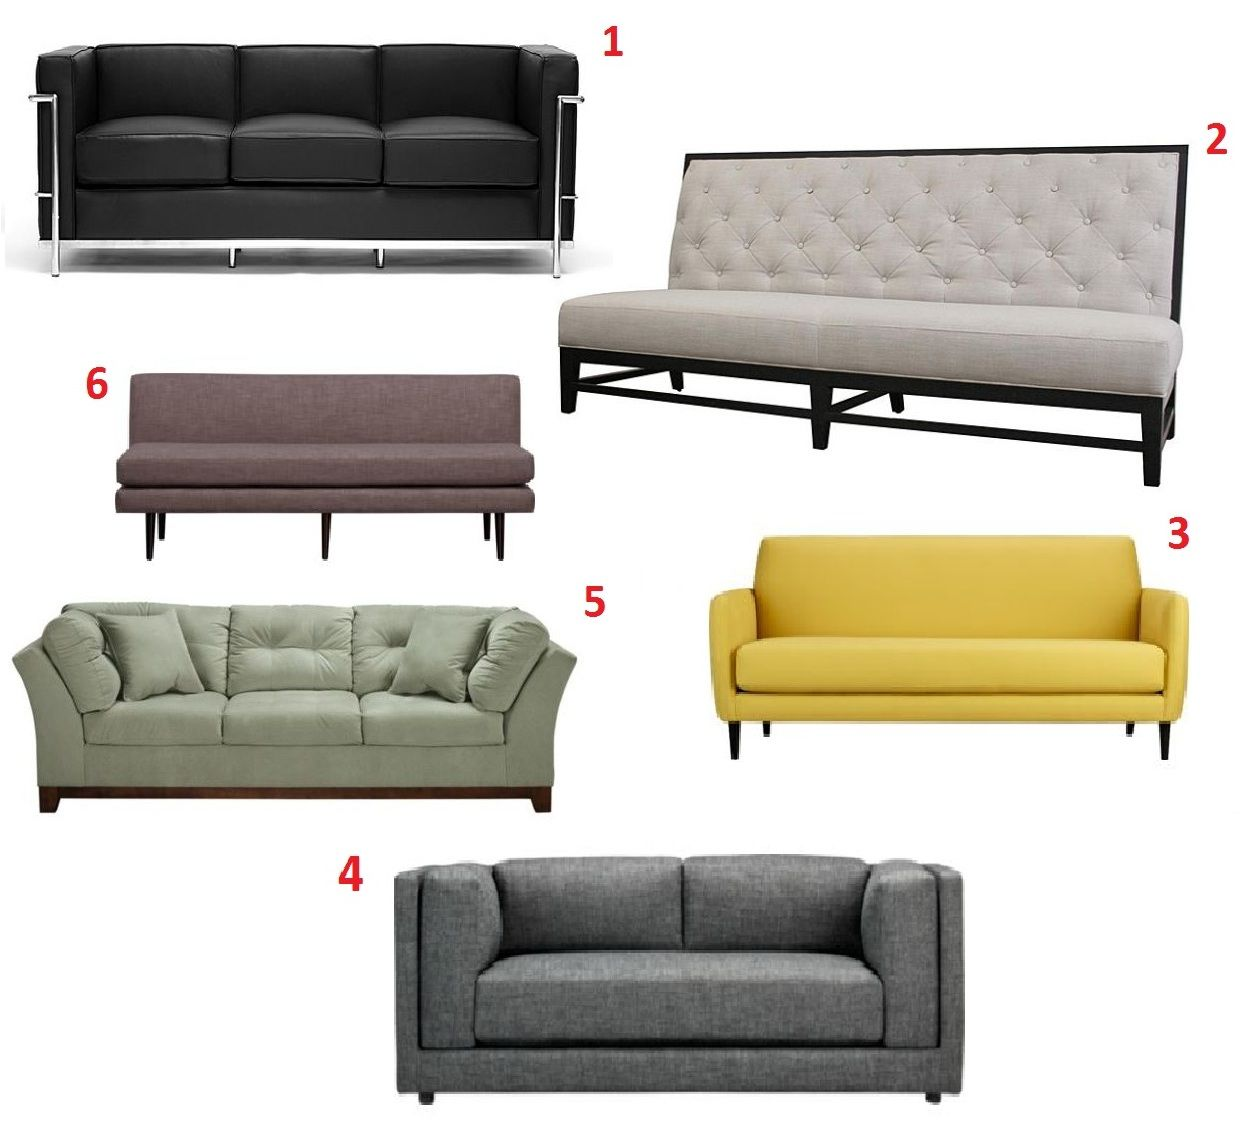 cute value city sectional sofa picture-Luxury Value City Sectional sofa Décor